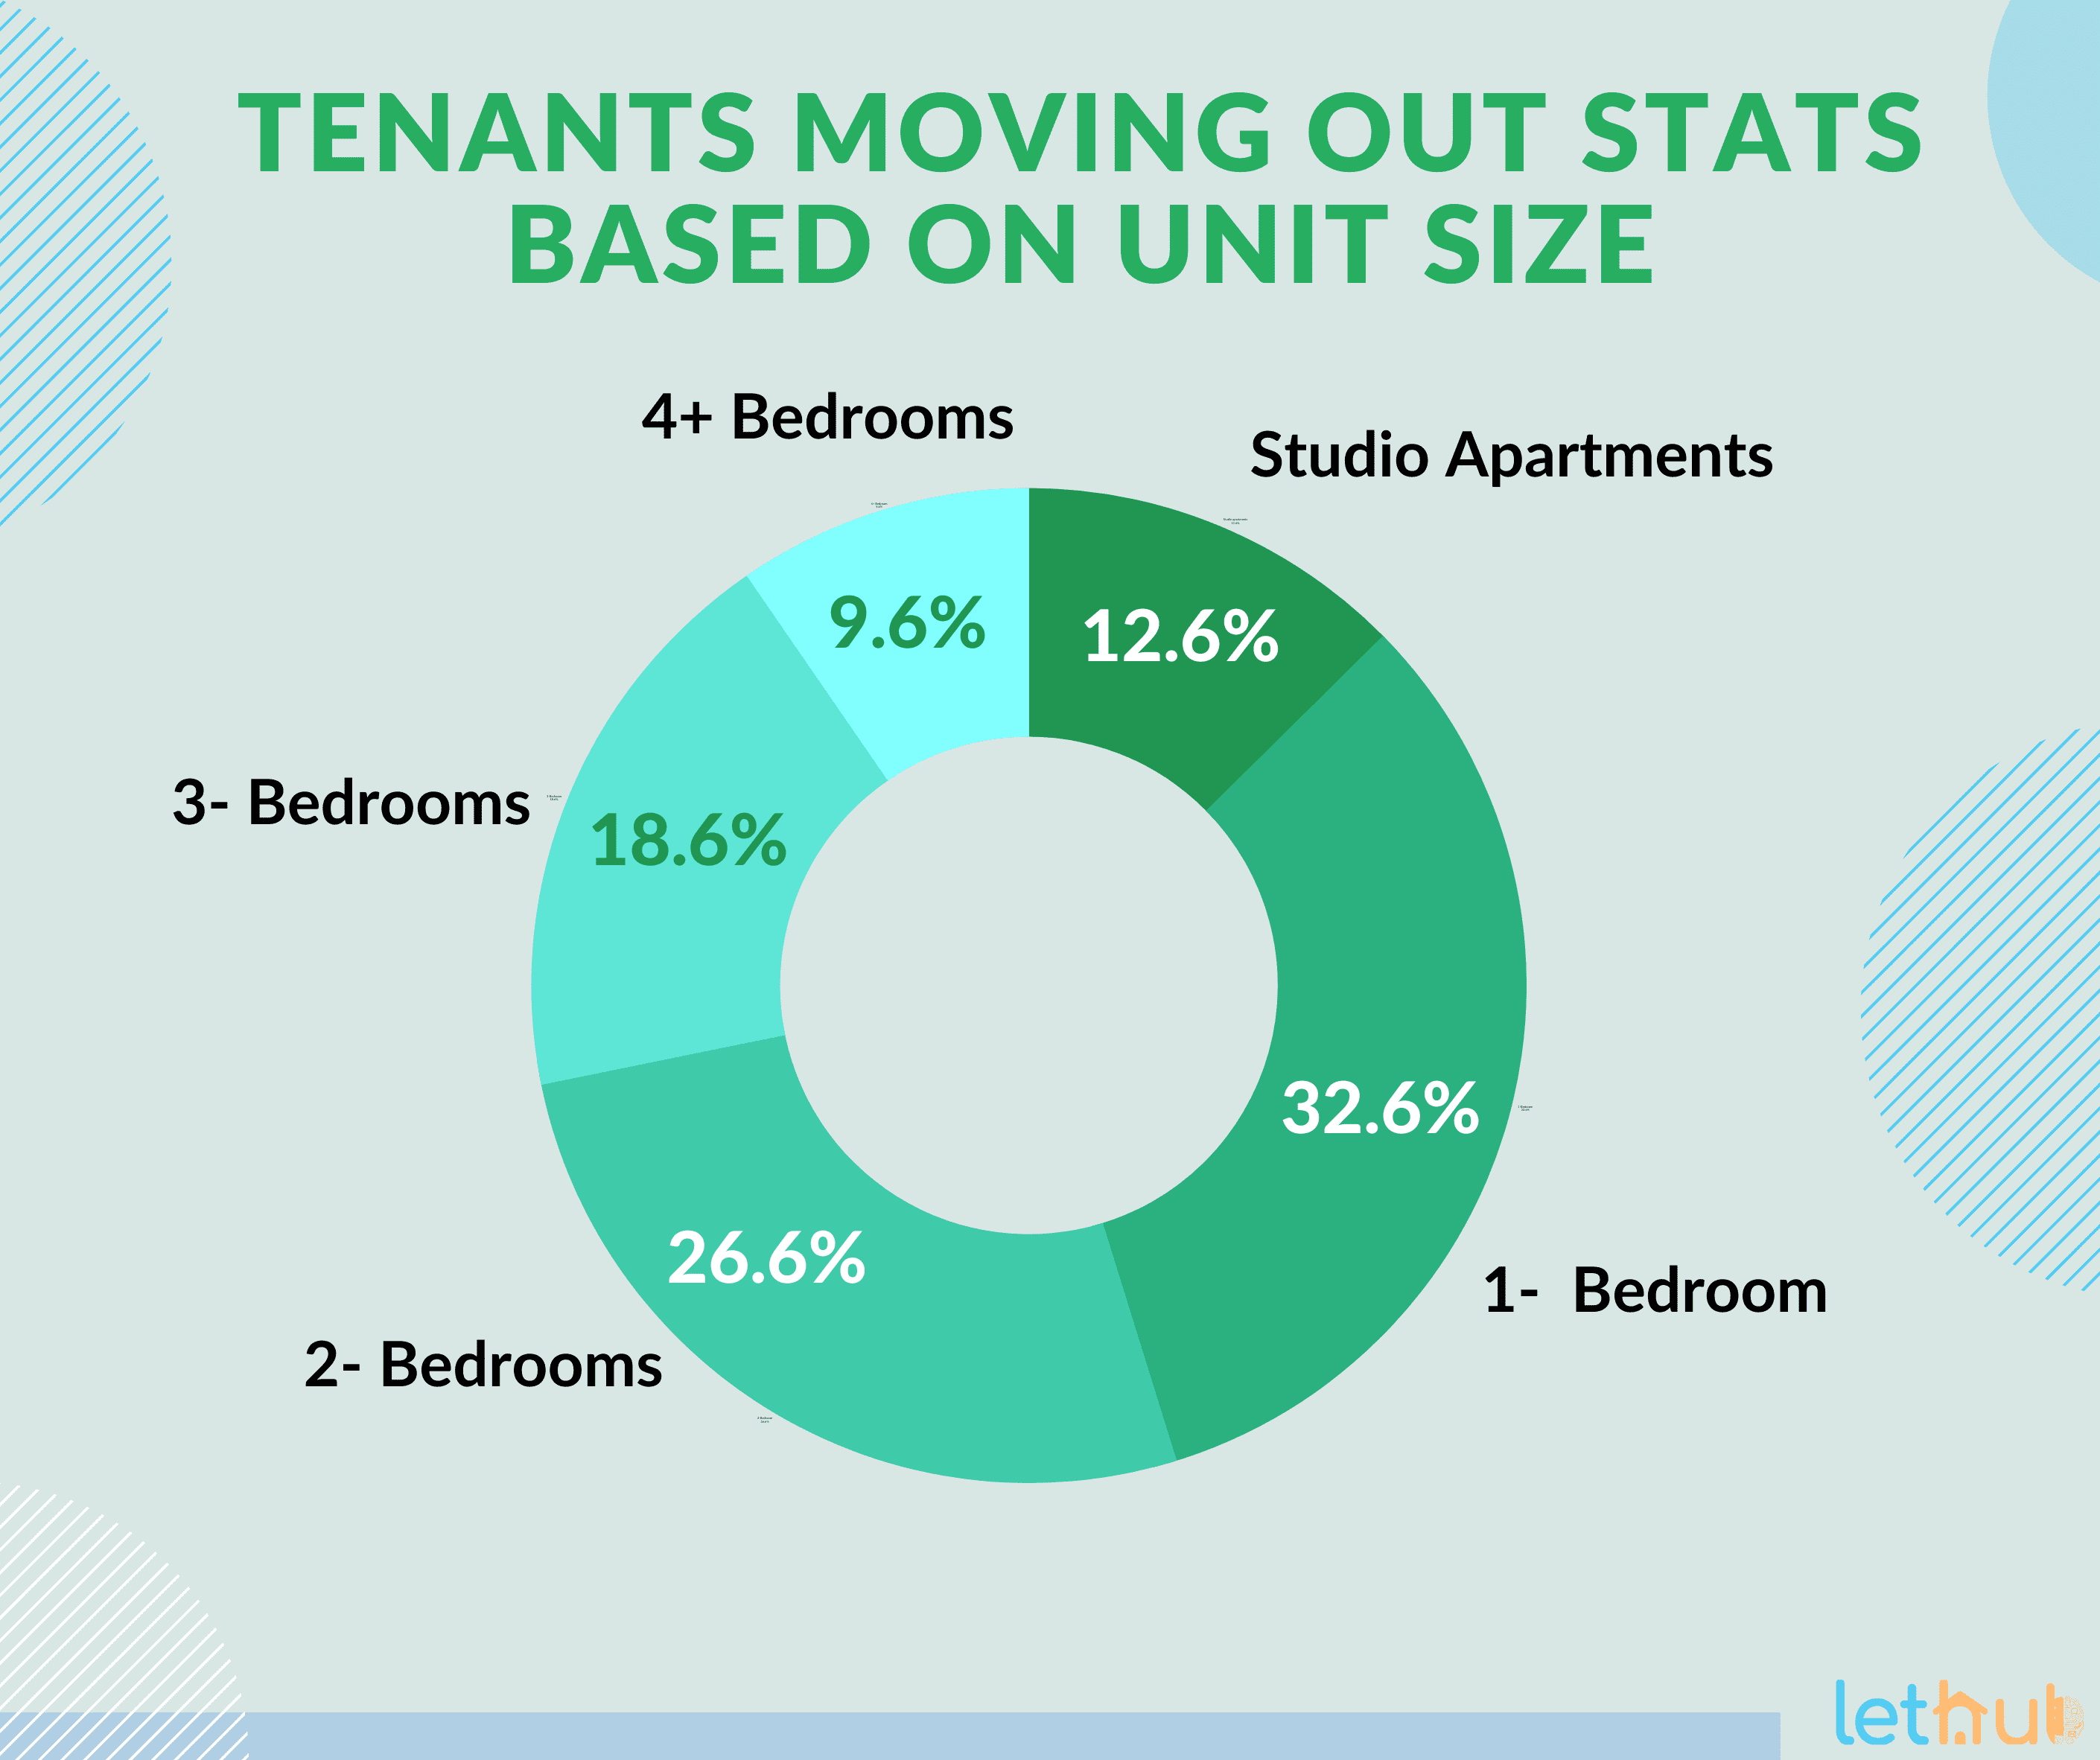 Tenants move-out stats